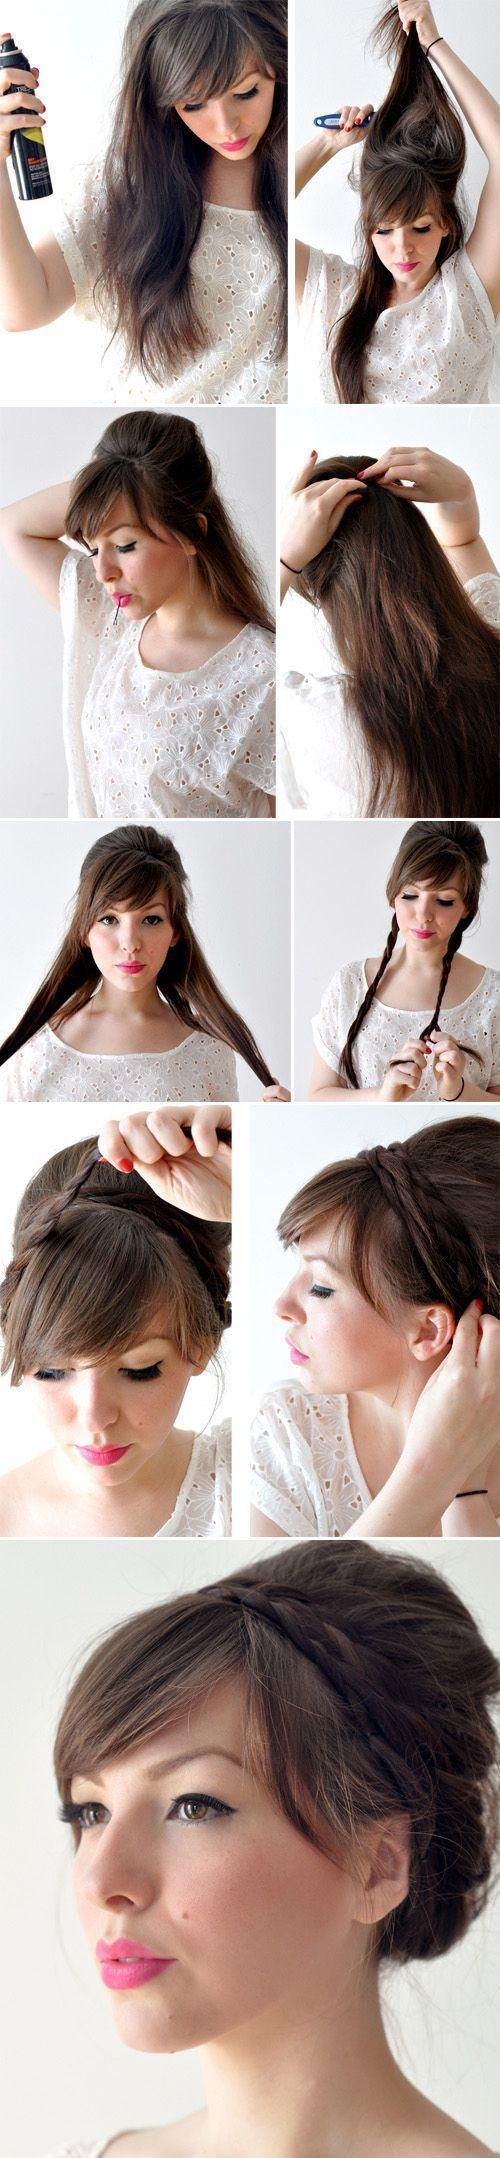 All women like to go out with pretty hairstyles. If they are good at doing some stupendous hairstyles, they will be envied by those women who are not so good at